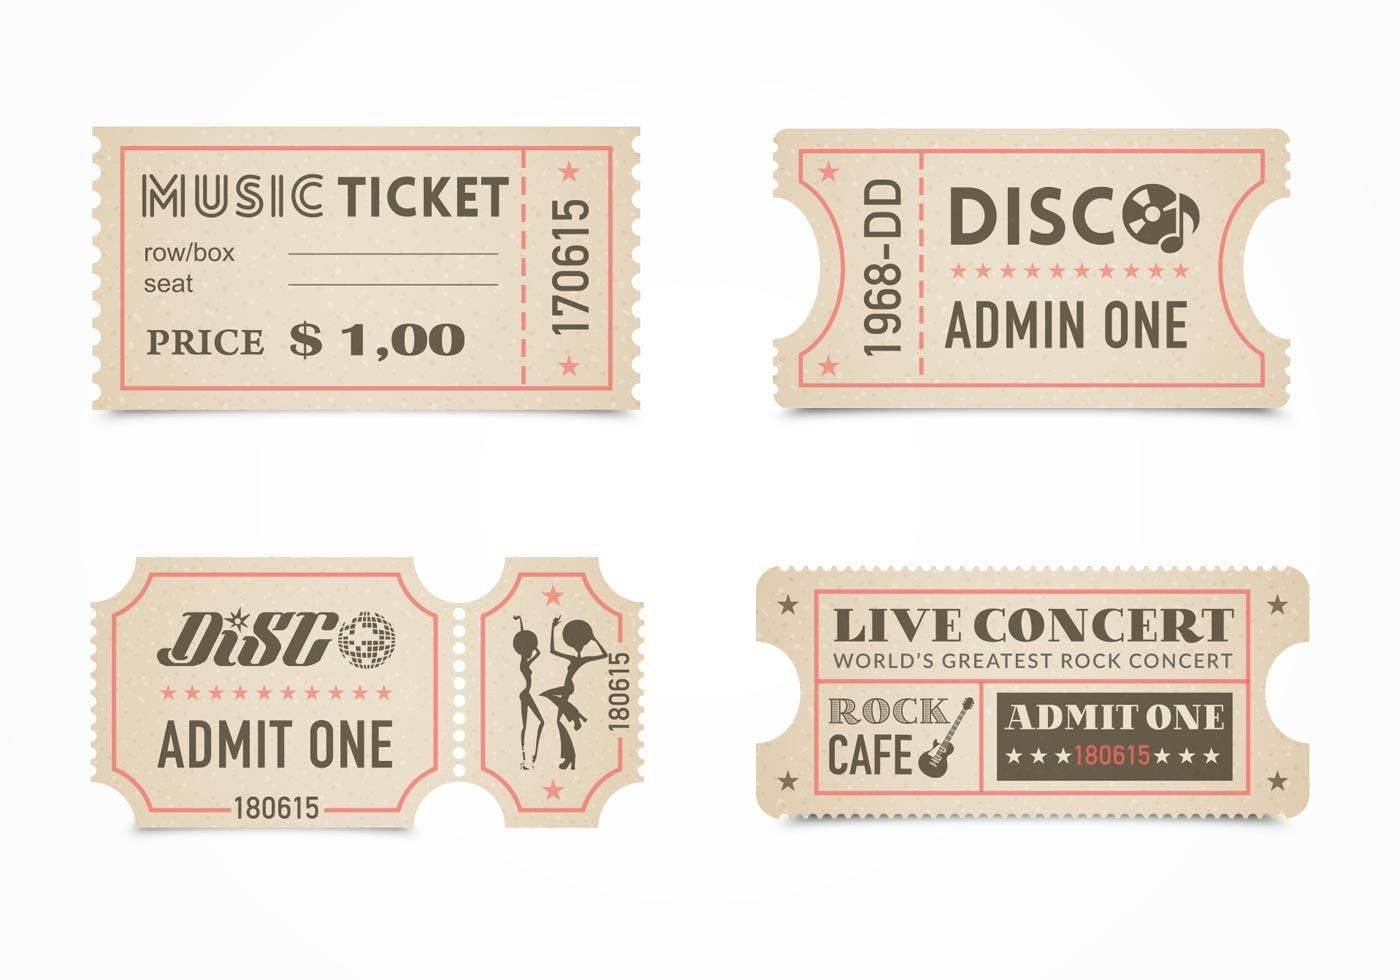 005 Shocking Vintage Concert Ticket Template Free Download Inspiration Full